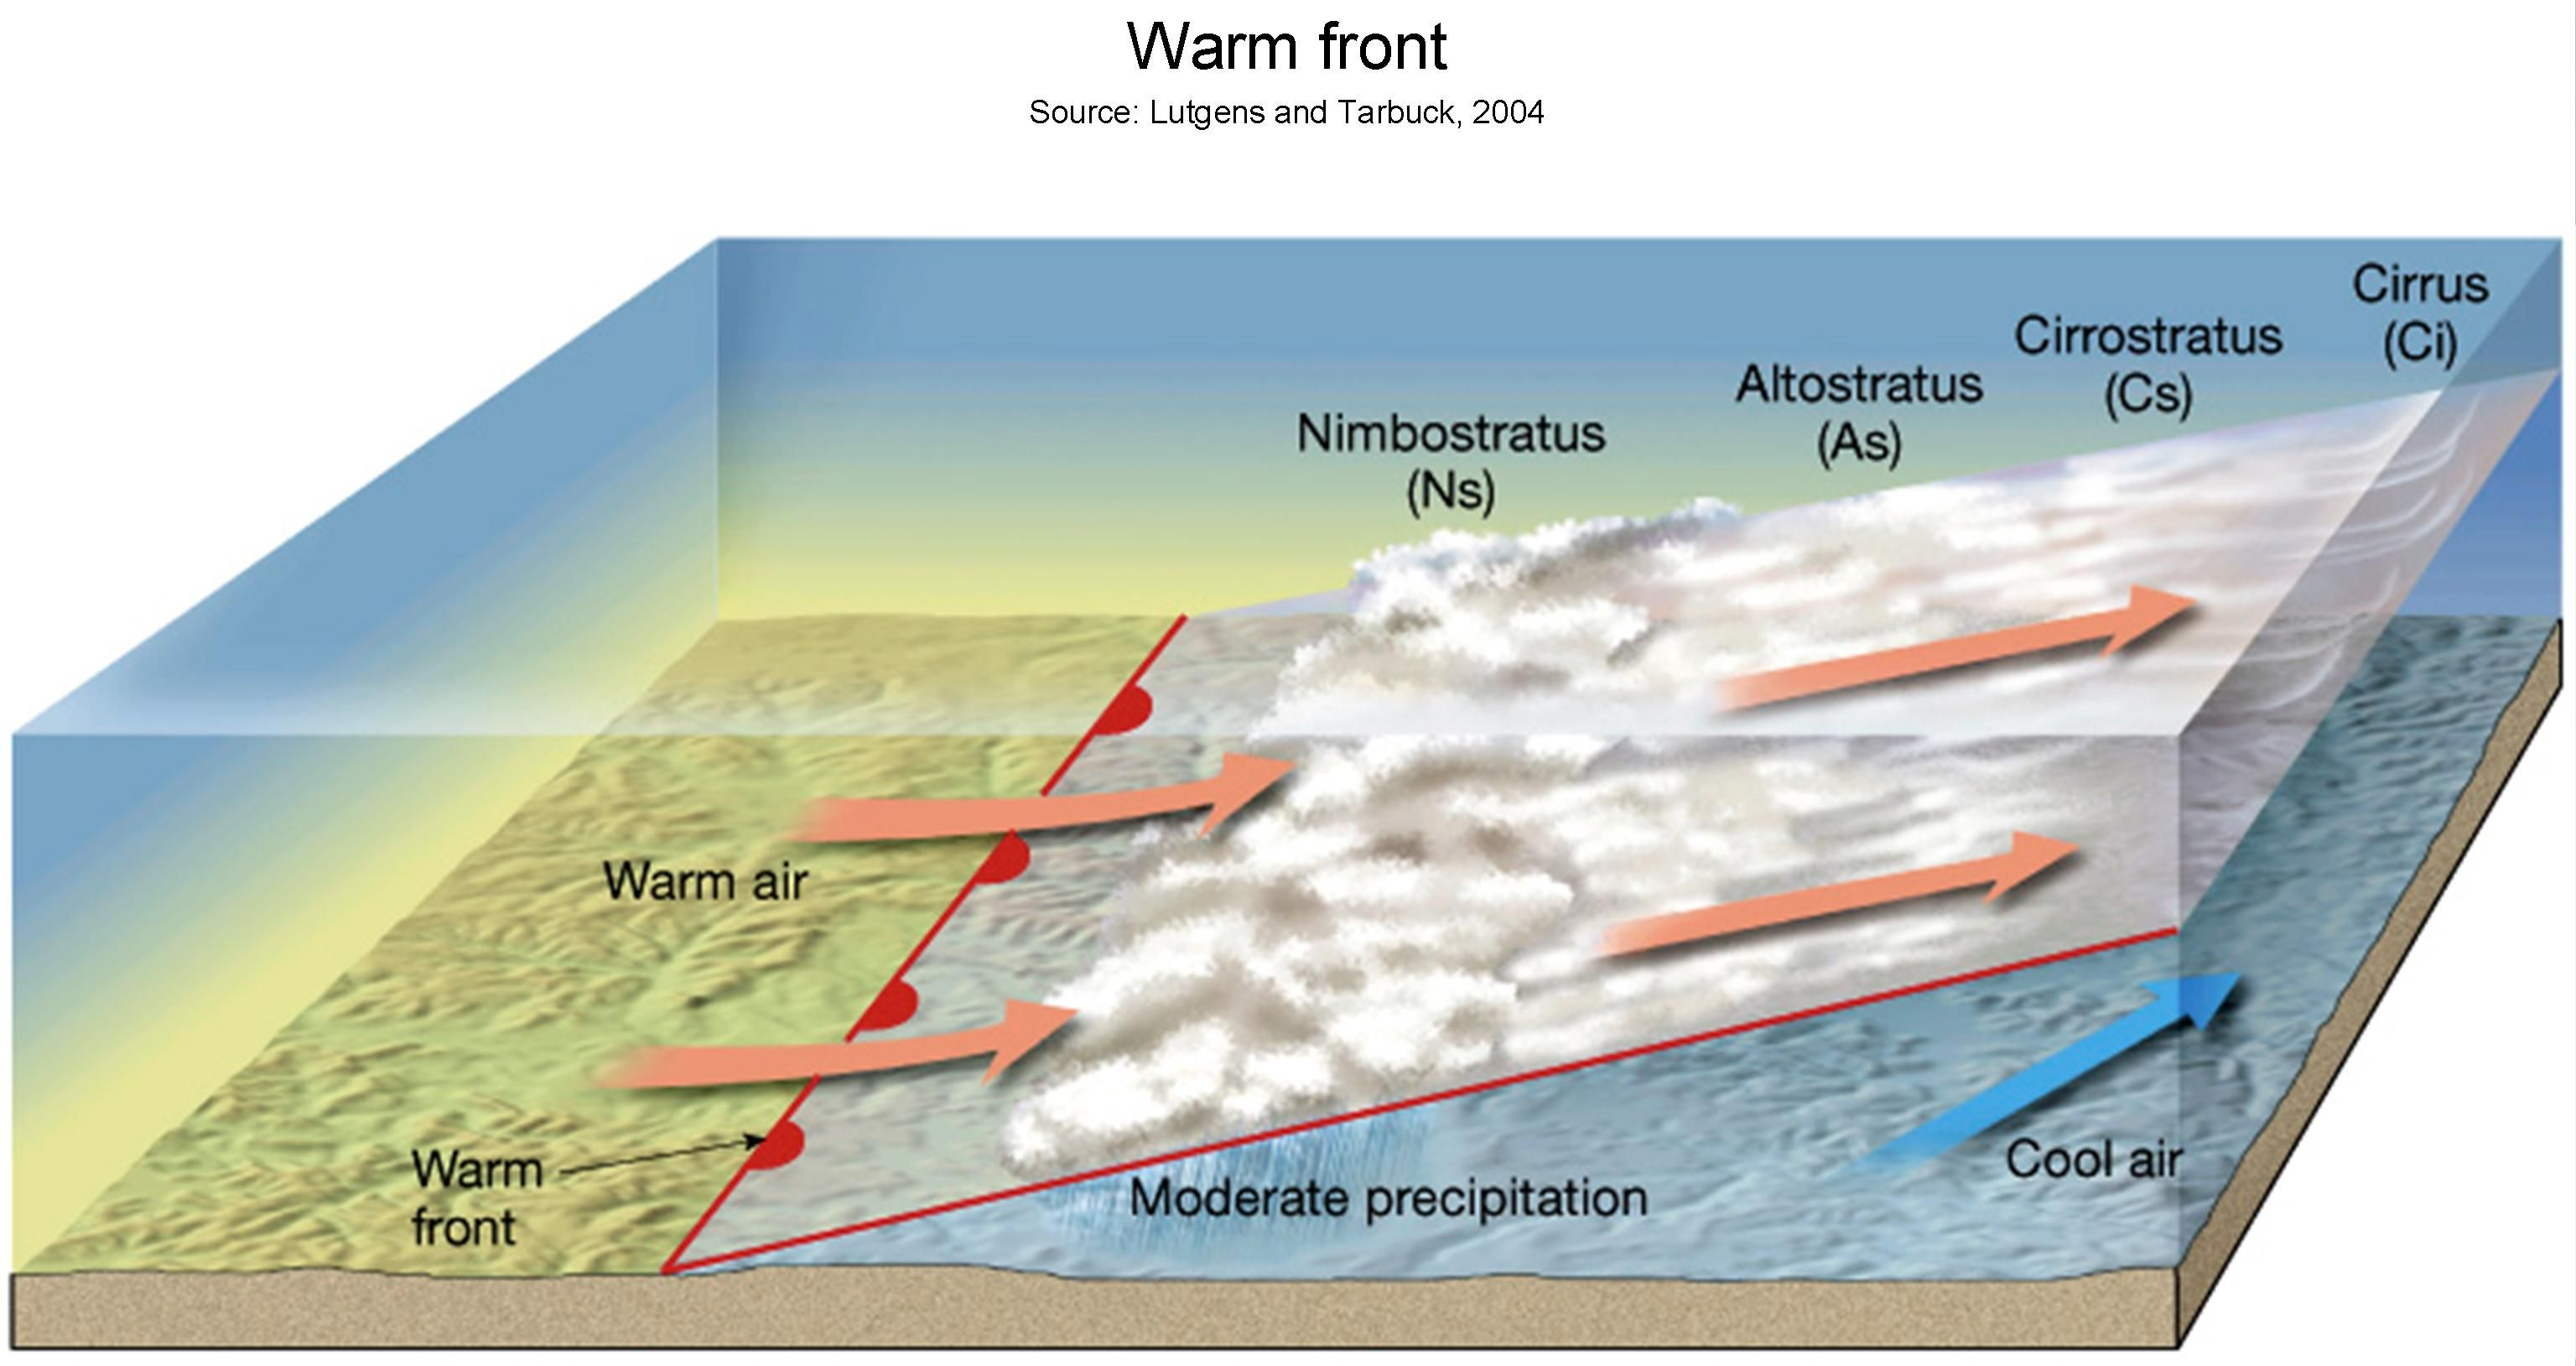 Typical Warm Front Weather Conditions In Winter Heading